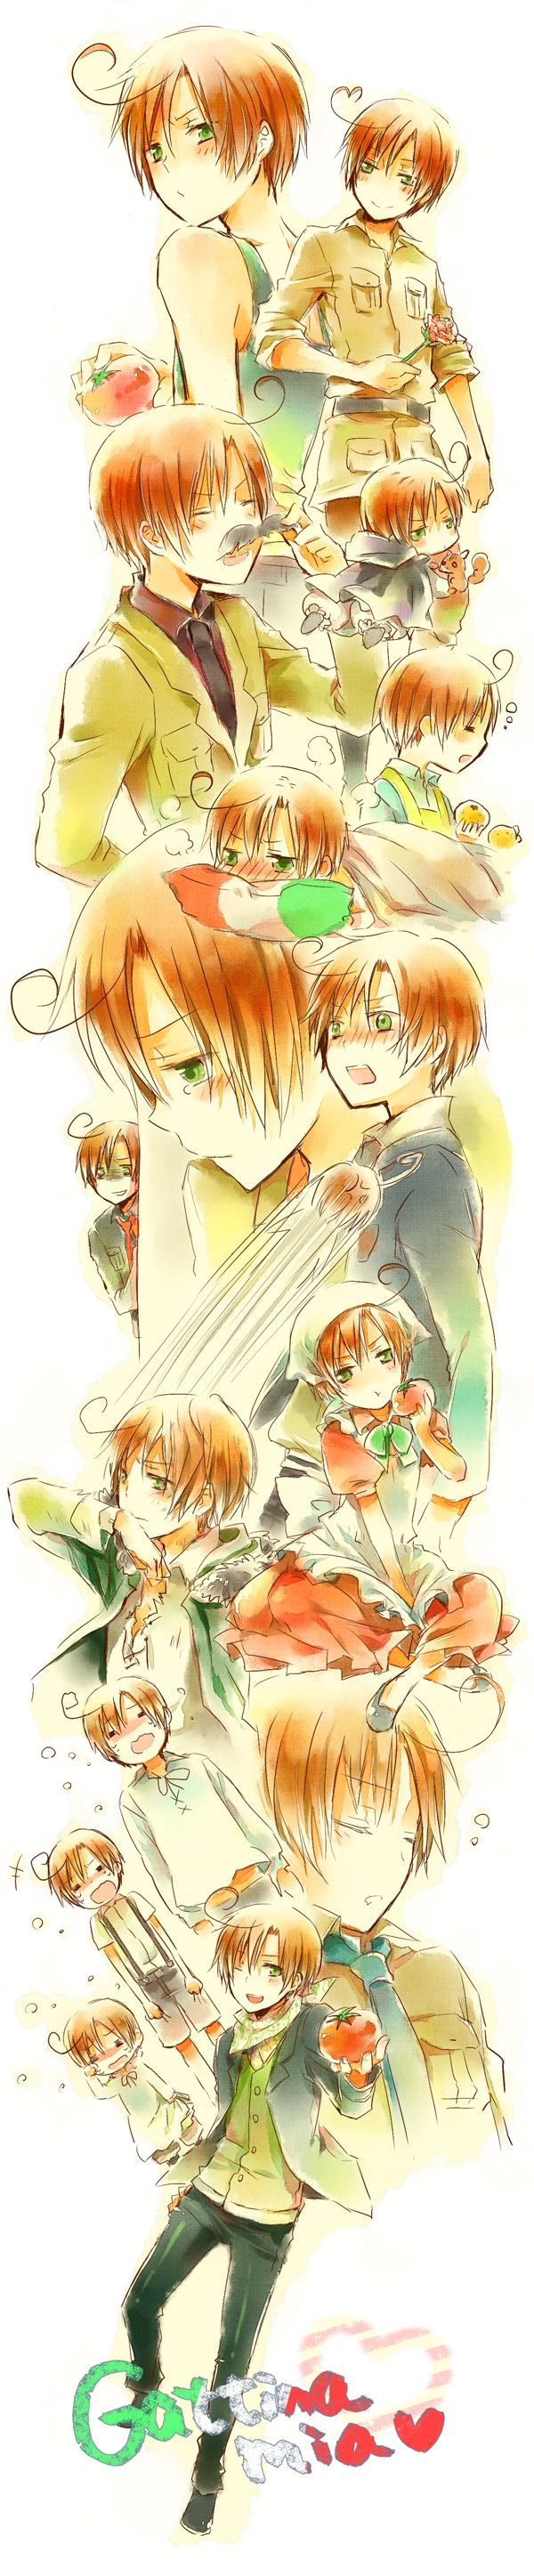 Hetalia - Romano<--- I once told Lovi that if I ever got blind, I would remember how he smiled when I compliment him. I would remember how he would blush when I tease him, and I would sadly remember how he would cry... But besides that, I would be happy because I remember everything about him that made me fall in love with him.